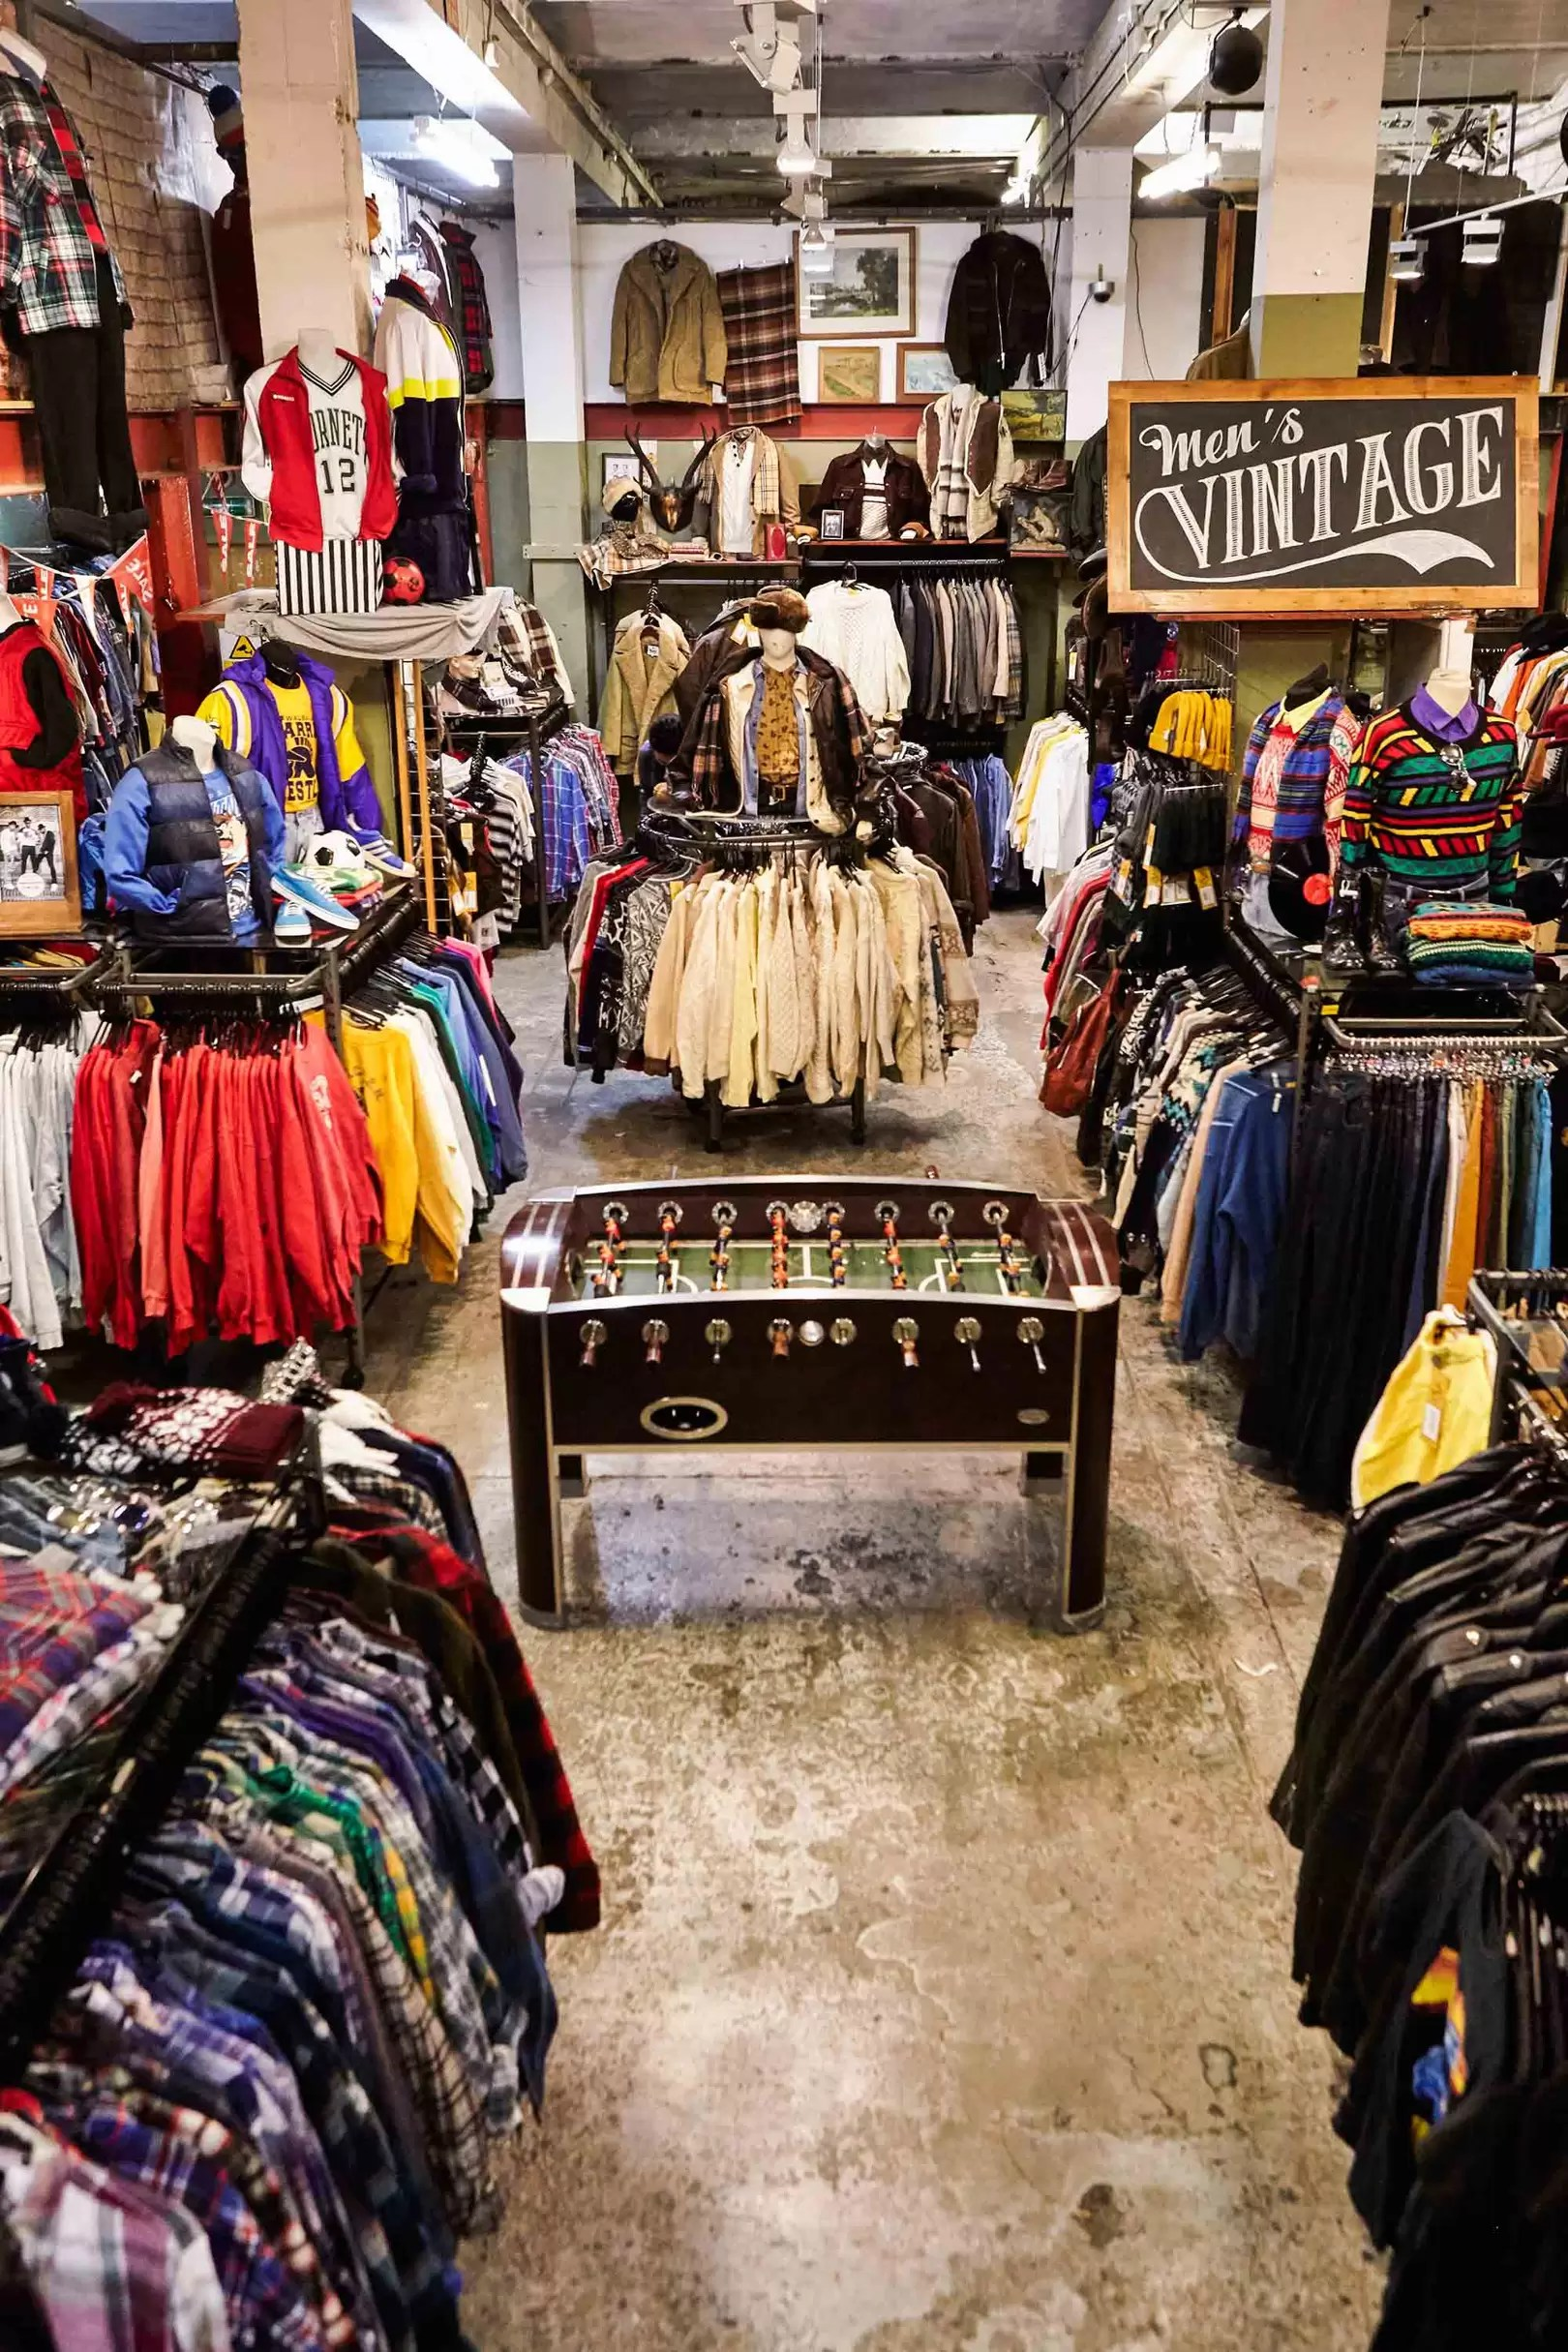 Vintage Fotos Best Vintage Shops In London | Cn Traveller